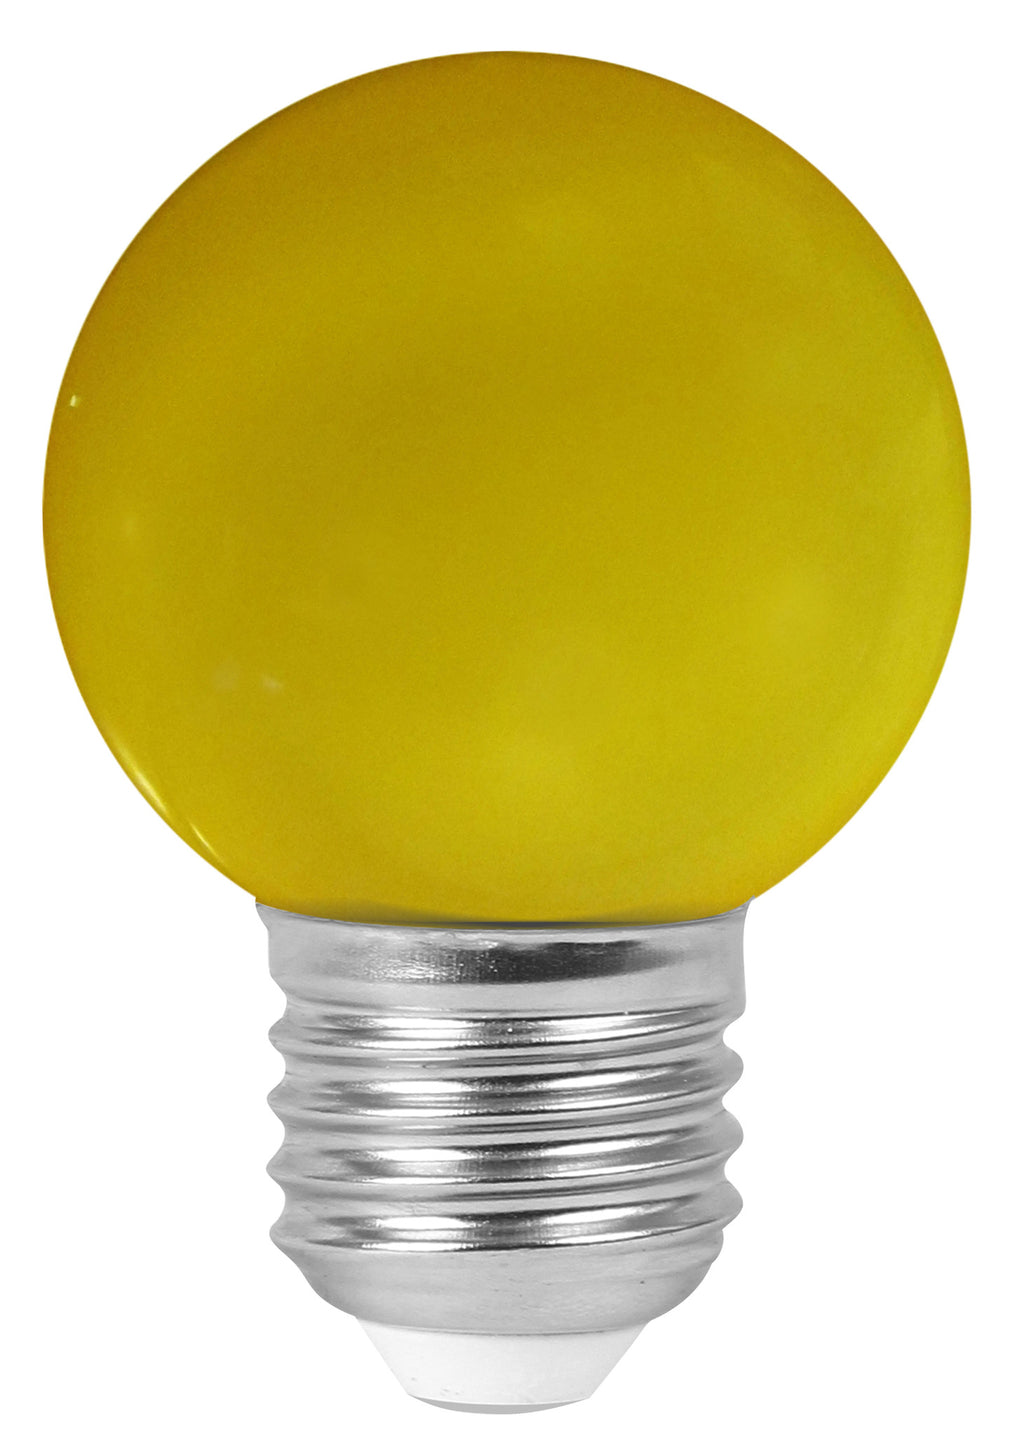 160137 - Golfball LED 1W E27 30Lm Yellow